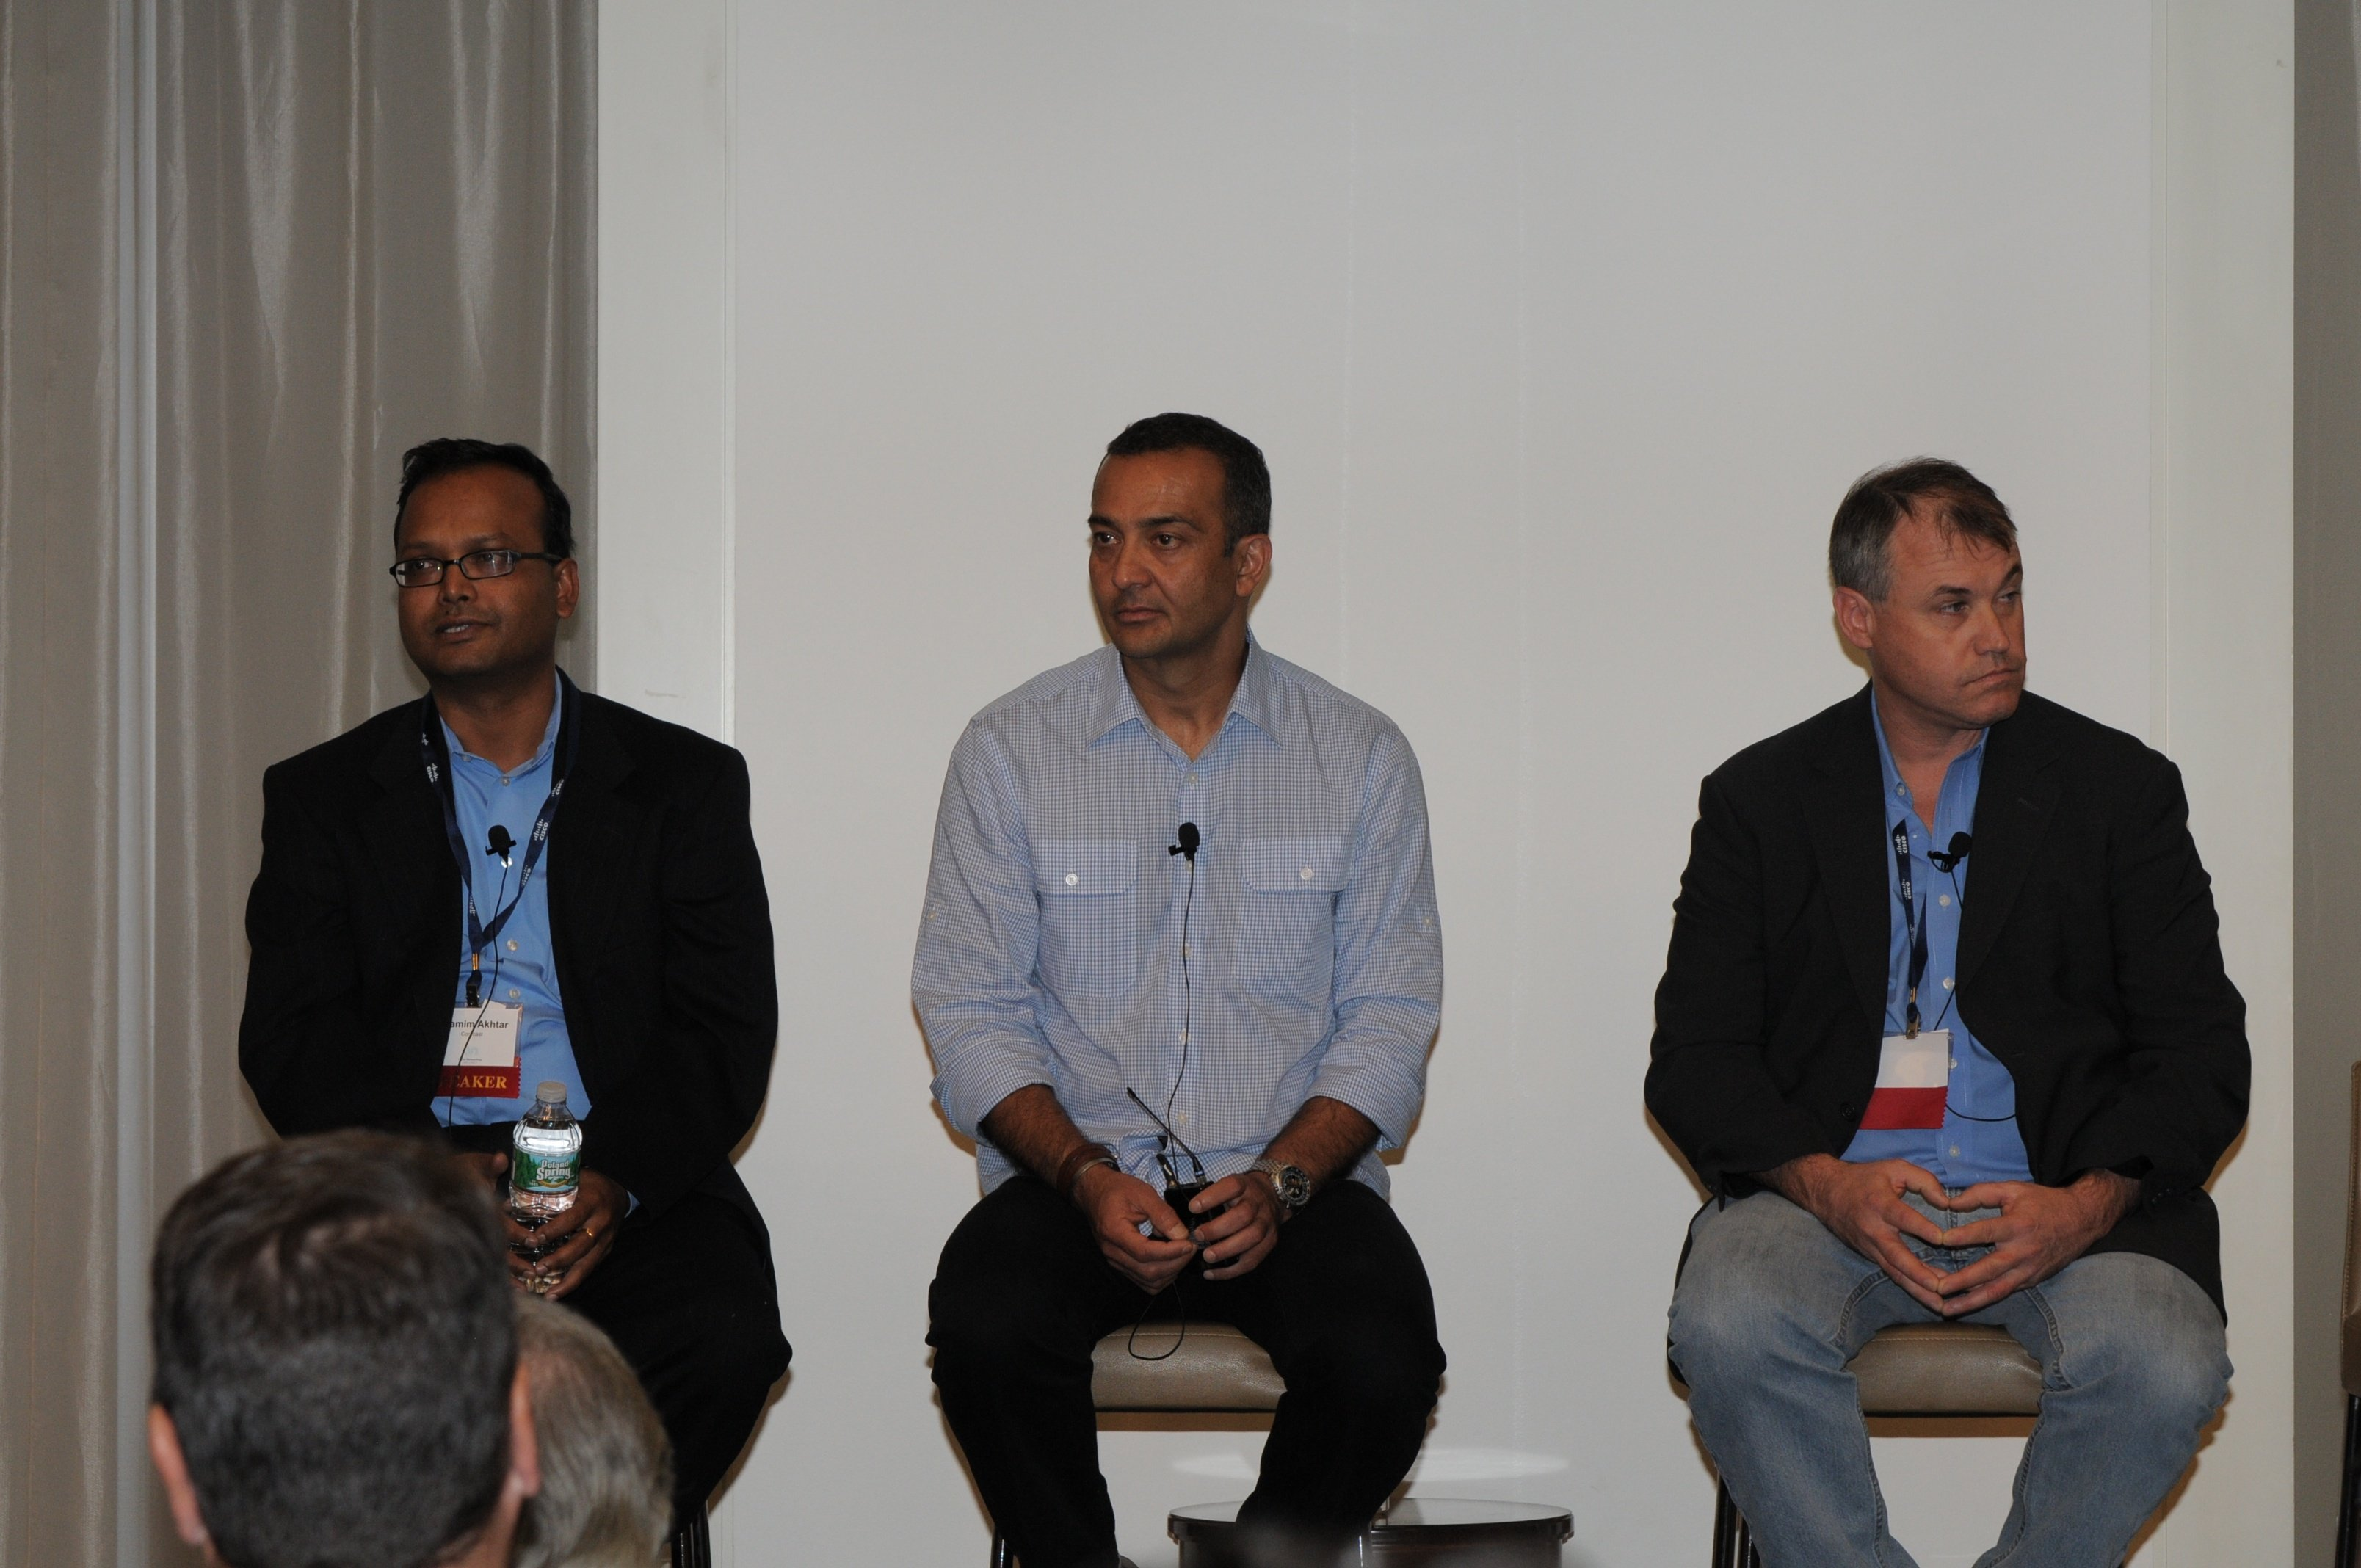 SDN Opportunities and Challenges in Content Providers, Public Cloud Operators, and Telcos panelists, Shamim Akhtar of Comcast, Najam Ahmad of Facebook, and Kevin Clarke of Verizon Terremark